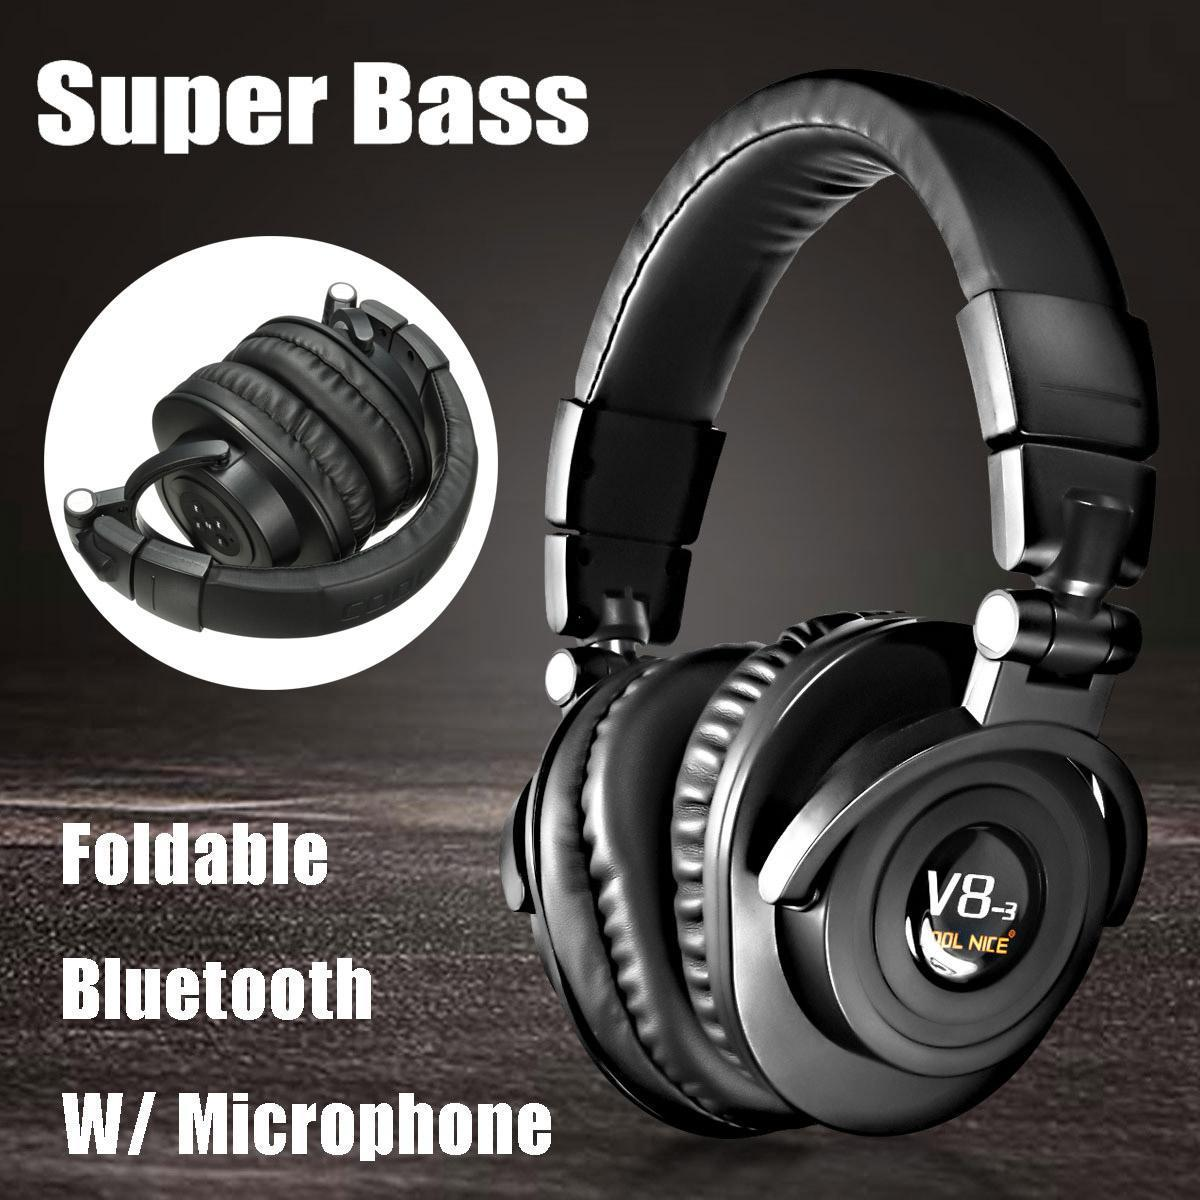 b0e91e1e866 USB Foldable Wireless Bluetooth 4.0 Super Bass Stereo Headphone Headset  Handfree Black/Brown